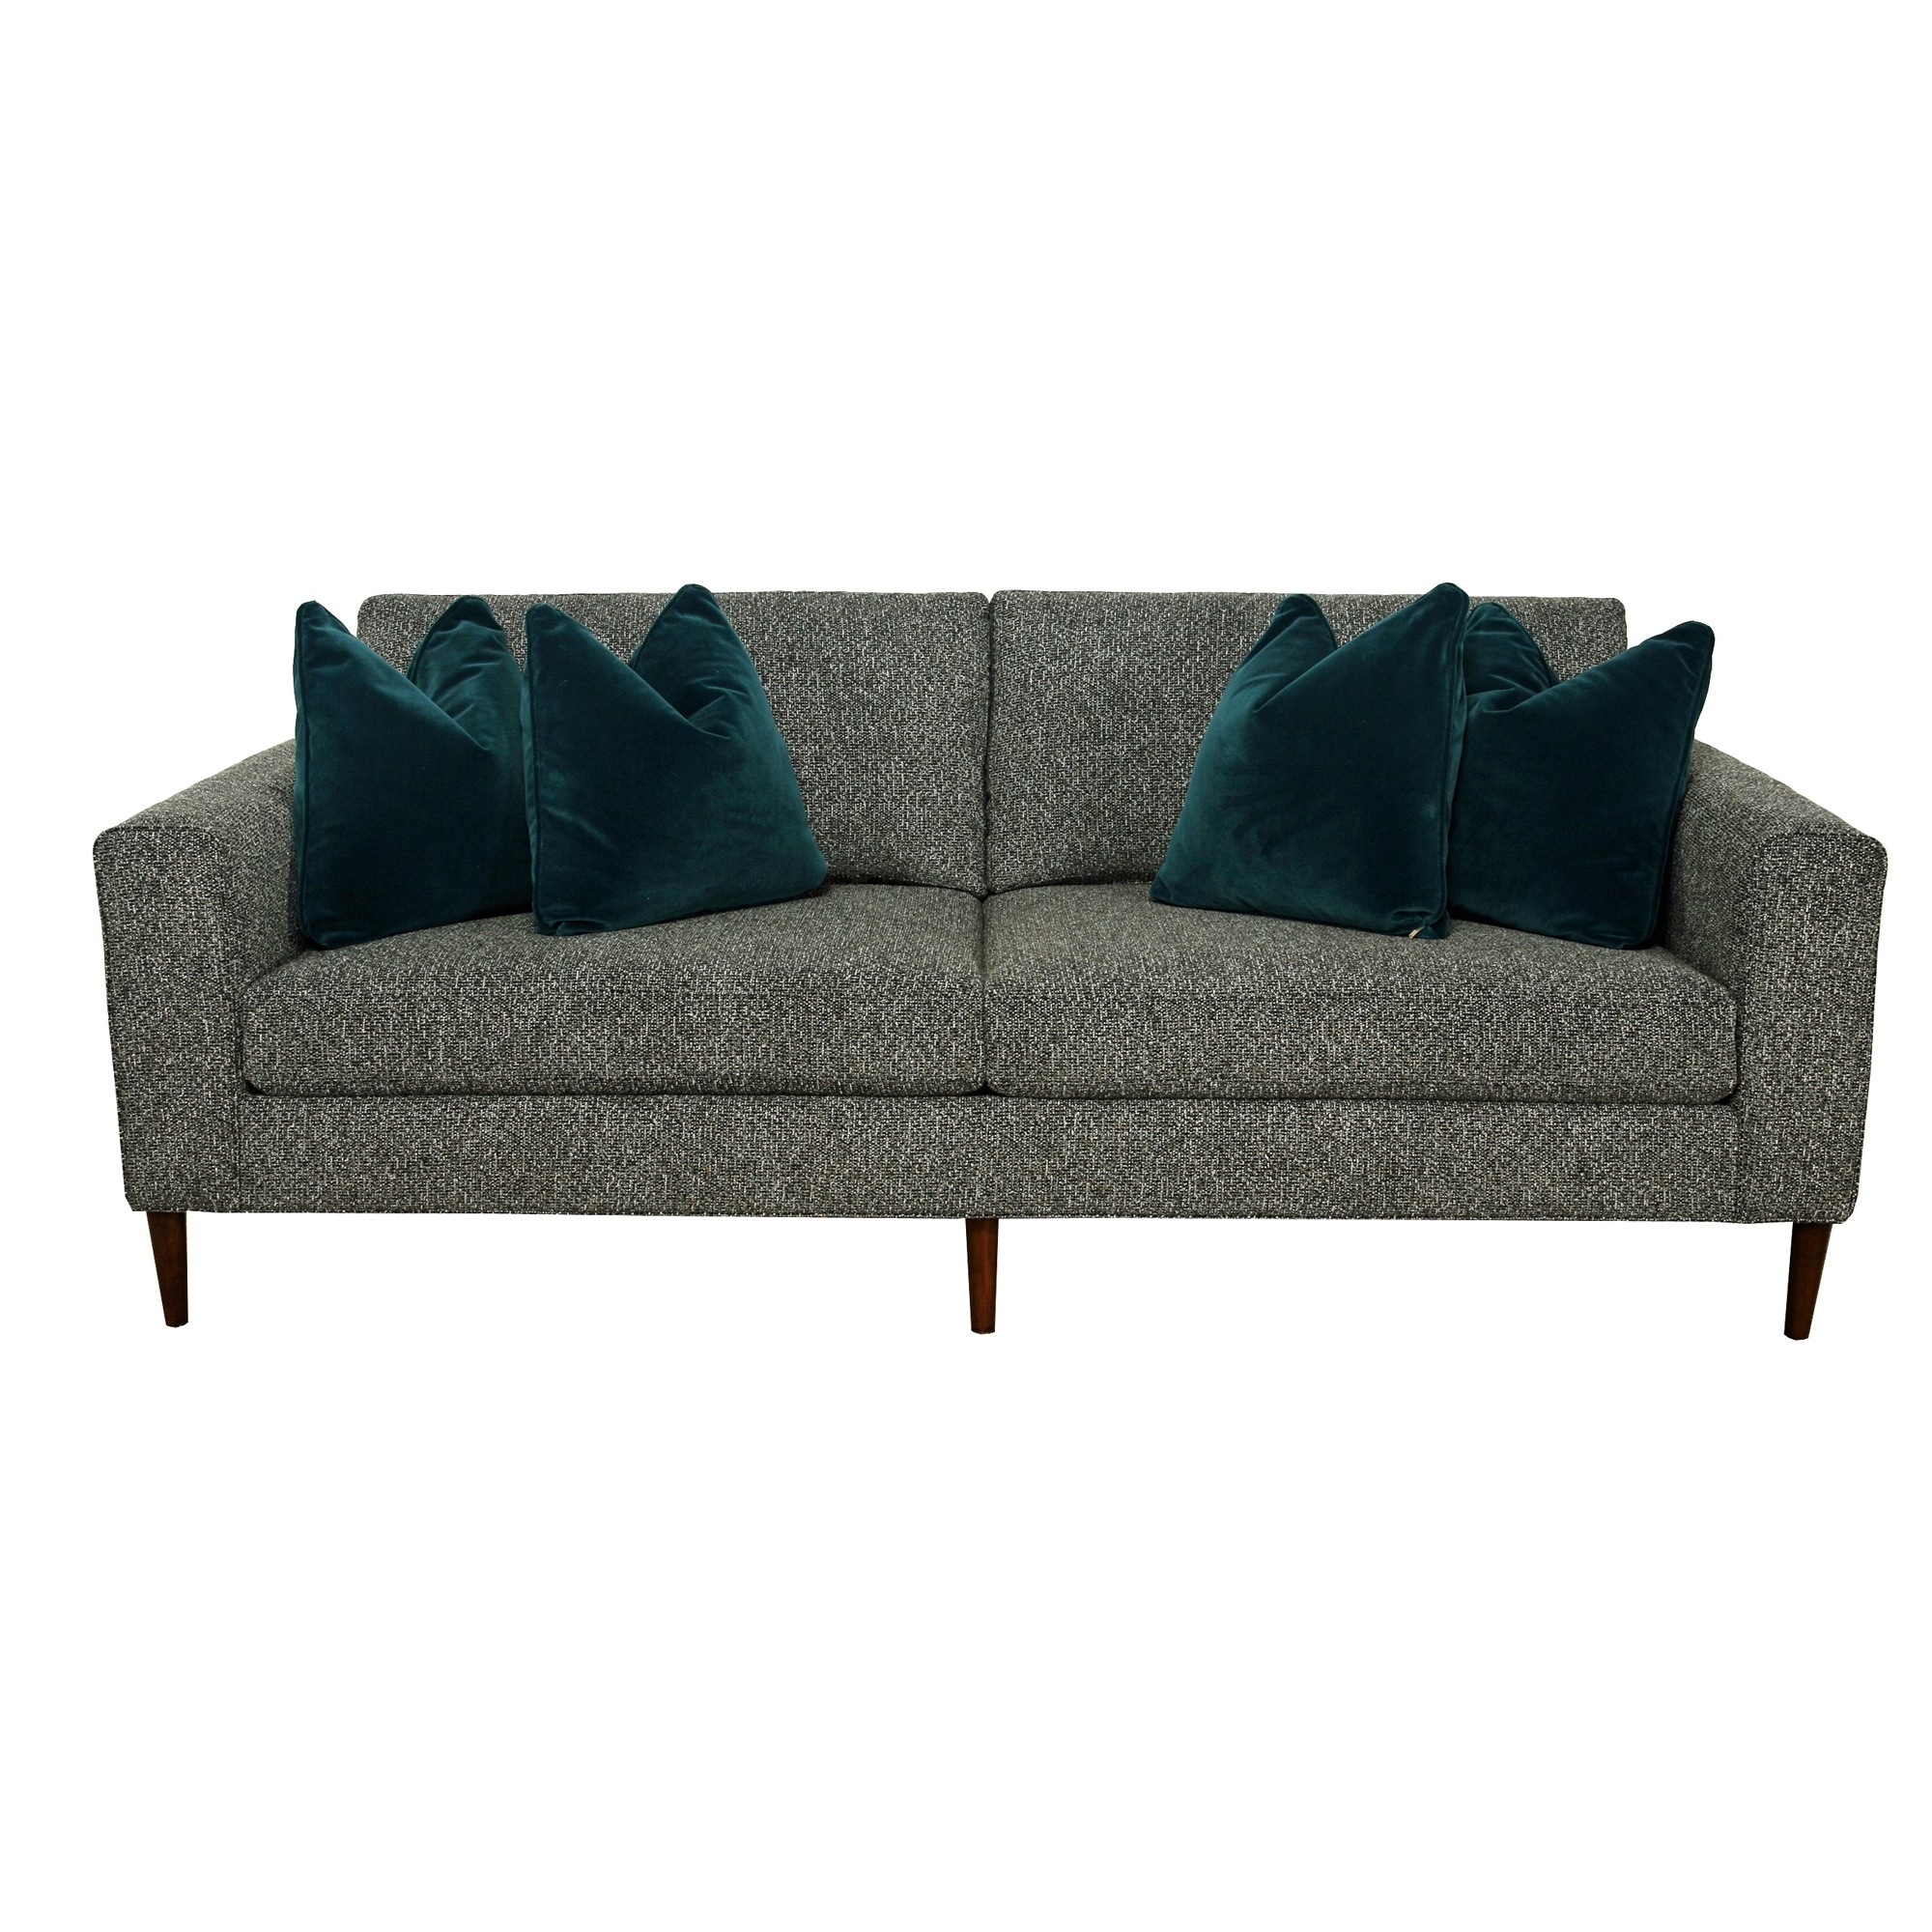 Tepperman's Within Most Current Teppermans Sectional Sofas (View 11 of 15)